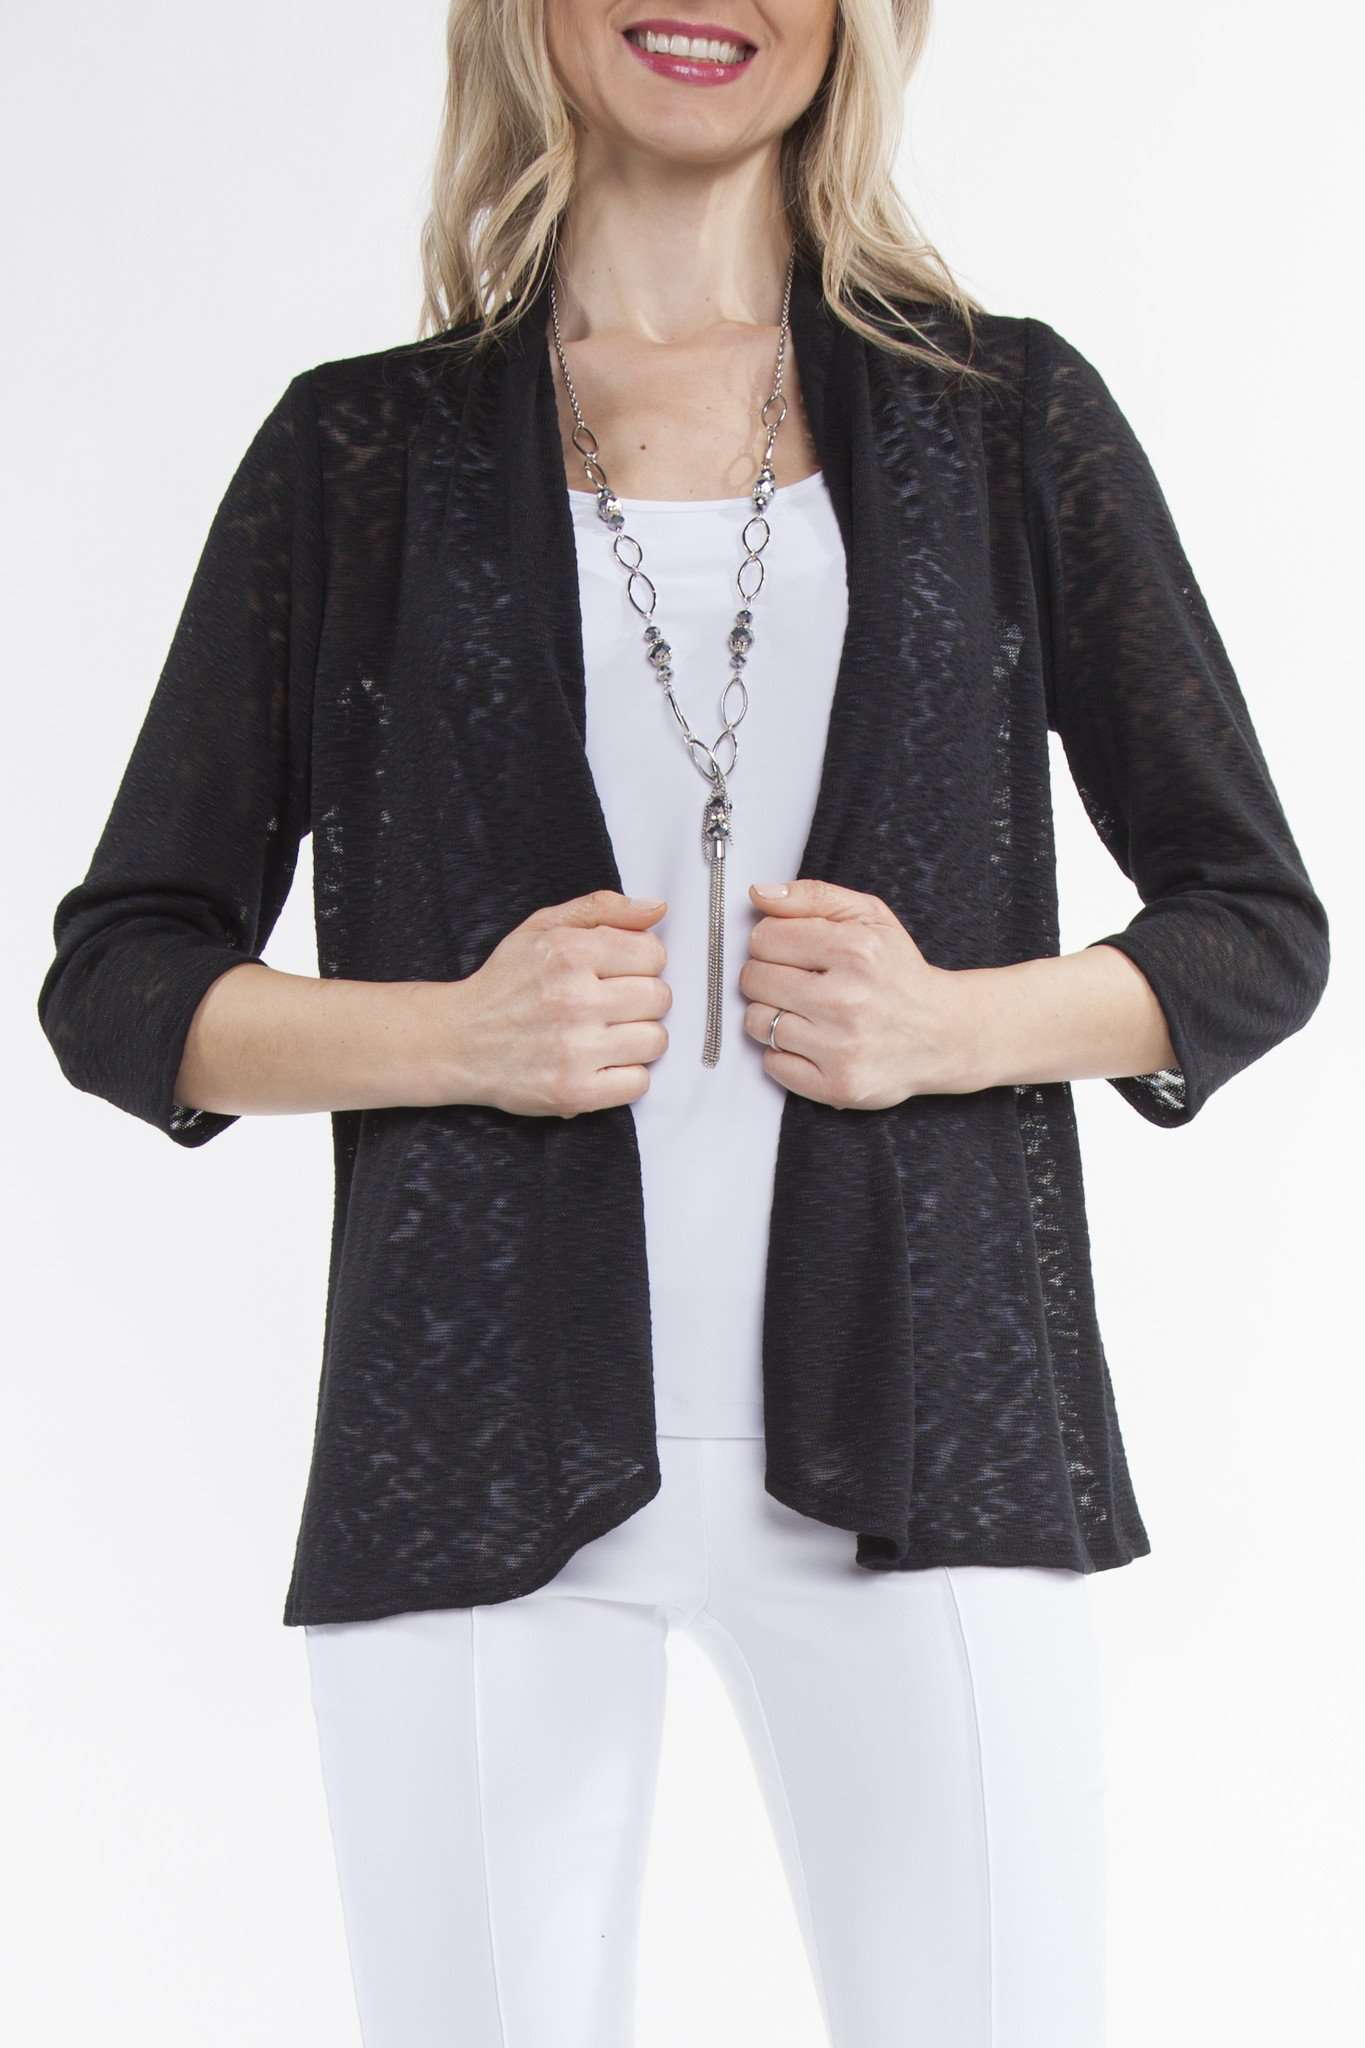 Cardigan in Soft Black Stretch Knit Fabric-Quality Guaranteed-Wardrobe Essential-Travel Friendly - Yvonne Marie